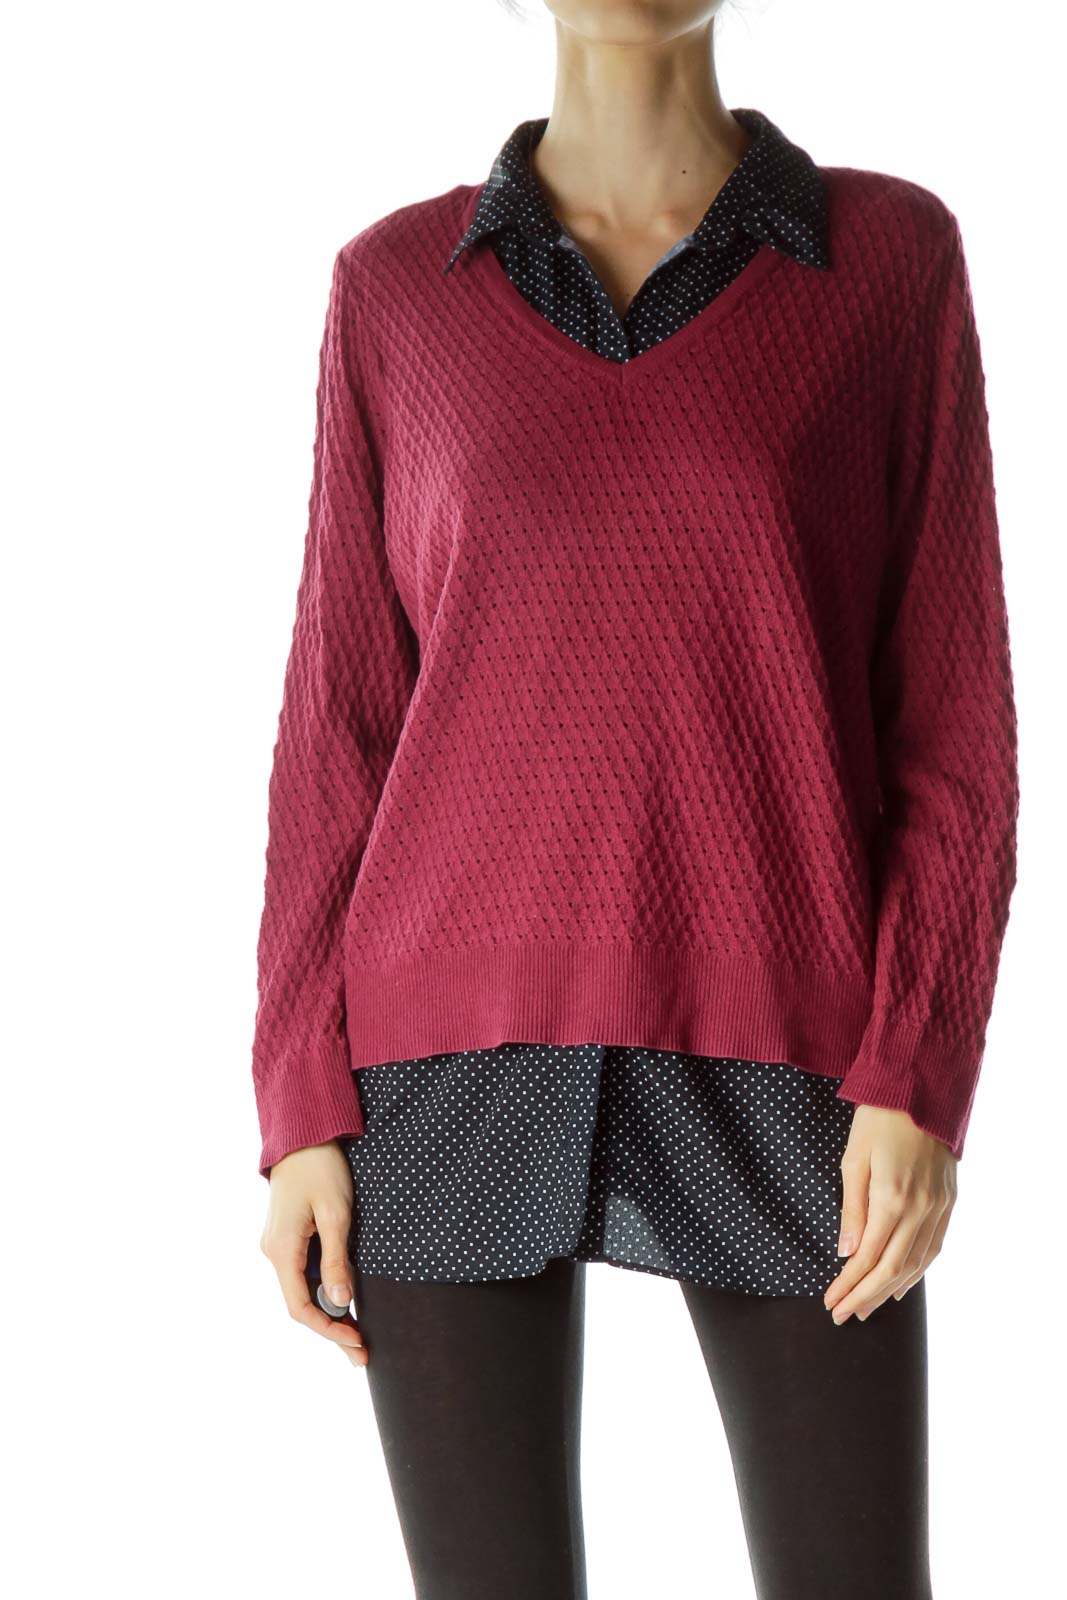 Burgundy and Polka Dot Knit Top Front